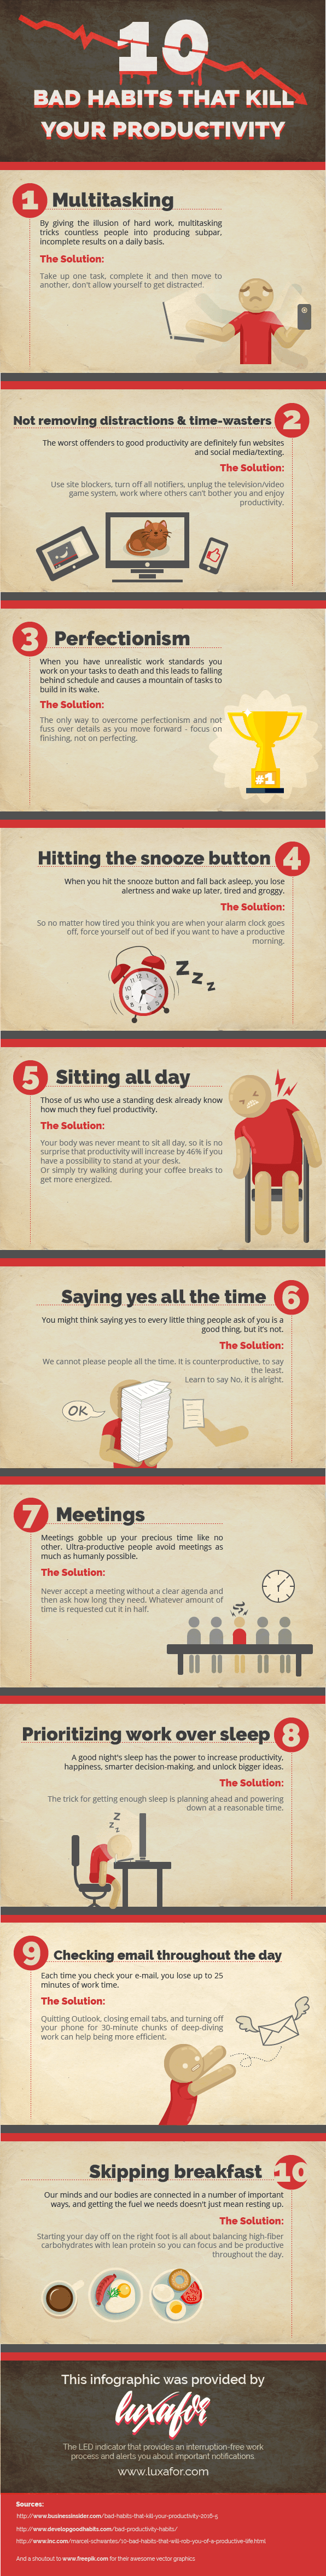 10 Bad Habits That Kill Your Productivity Infographic